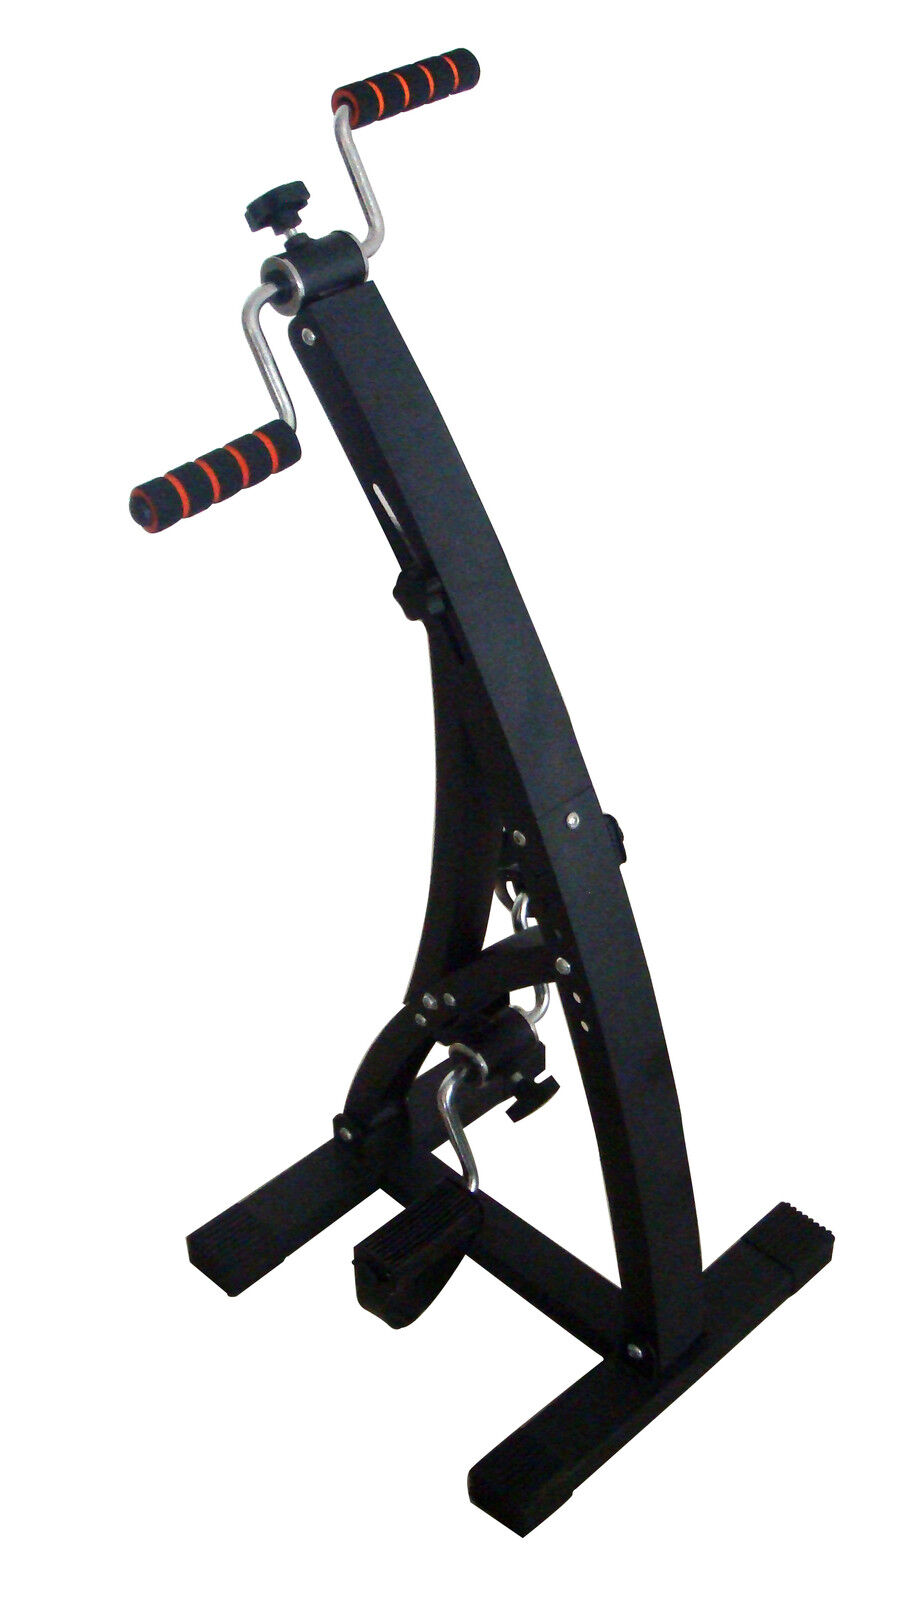 BetaFlex Total-Body Exercise Bike  Work Out Legs and Arms KH522  best sale